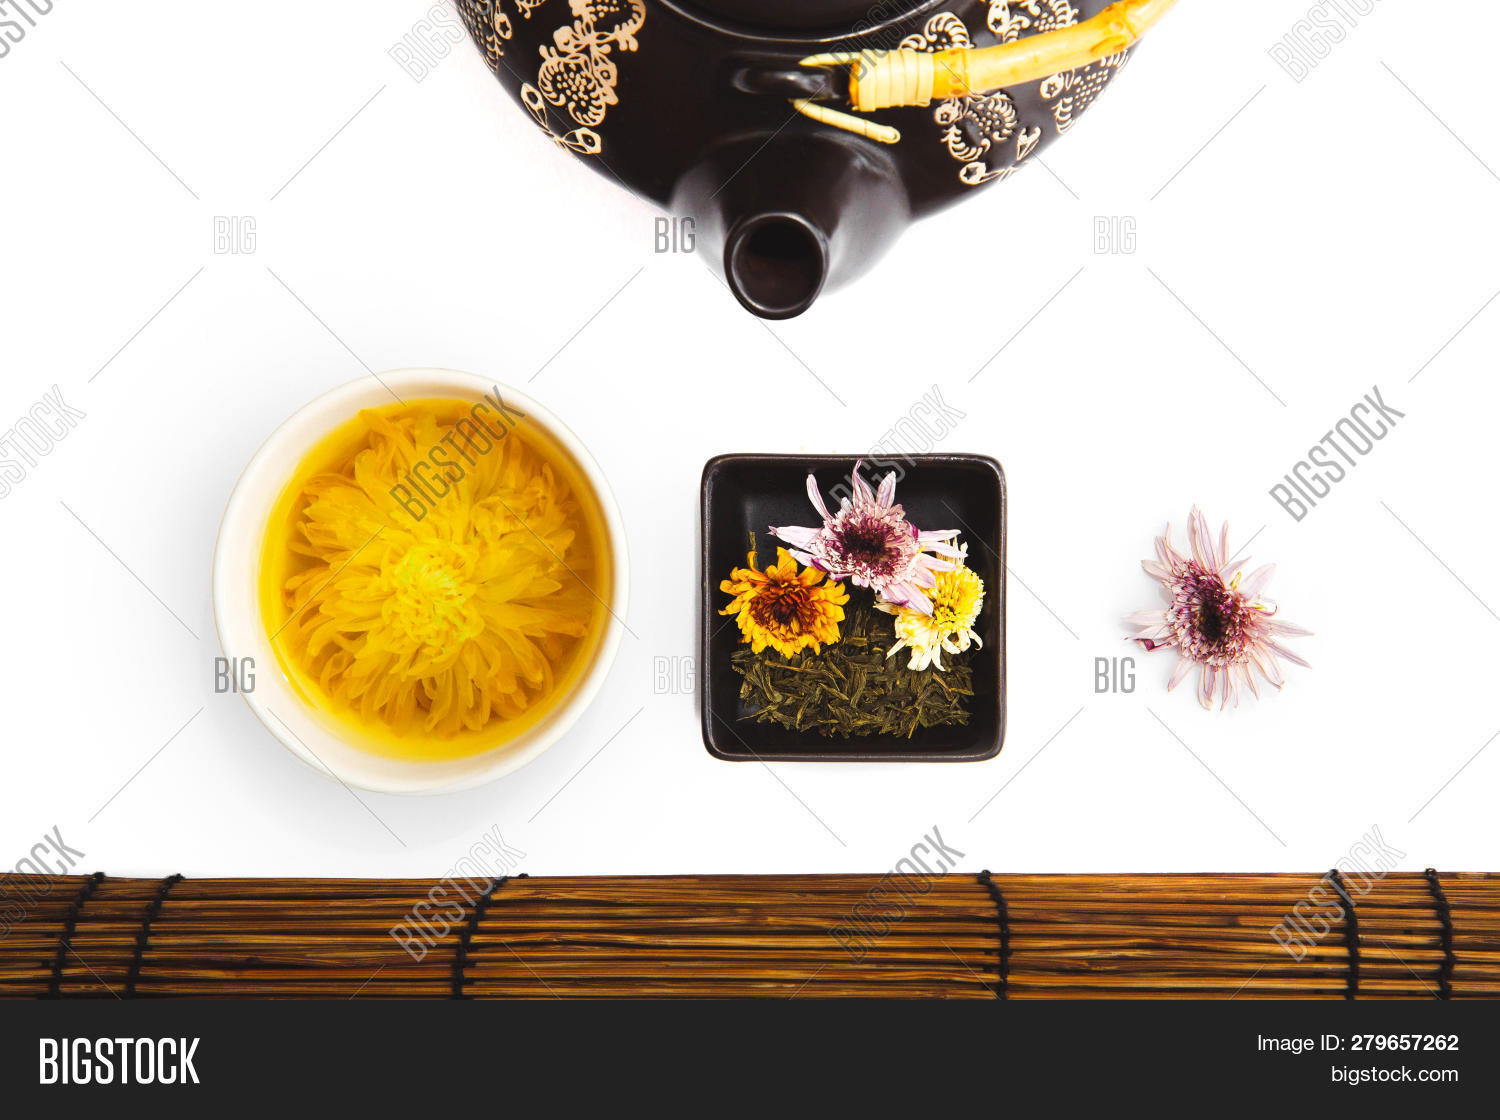 Tea Ceremony On White Image Photo Free Trial Bigstock